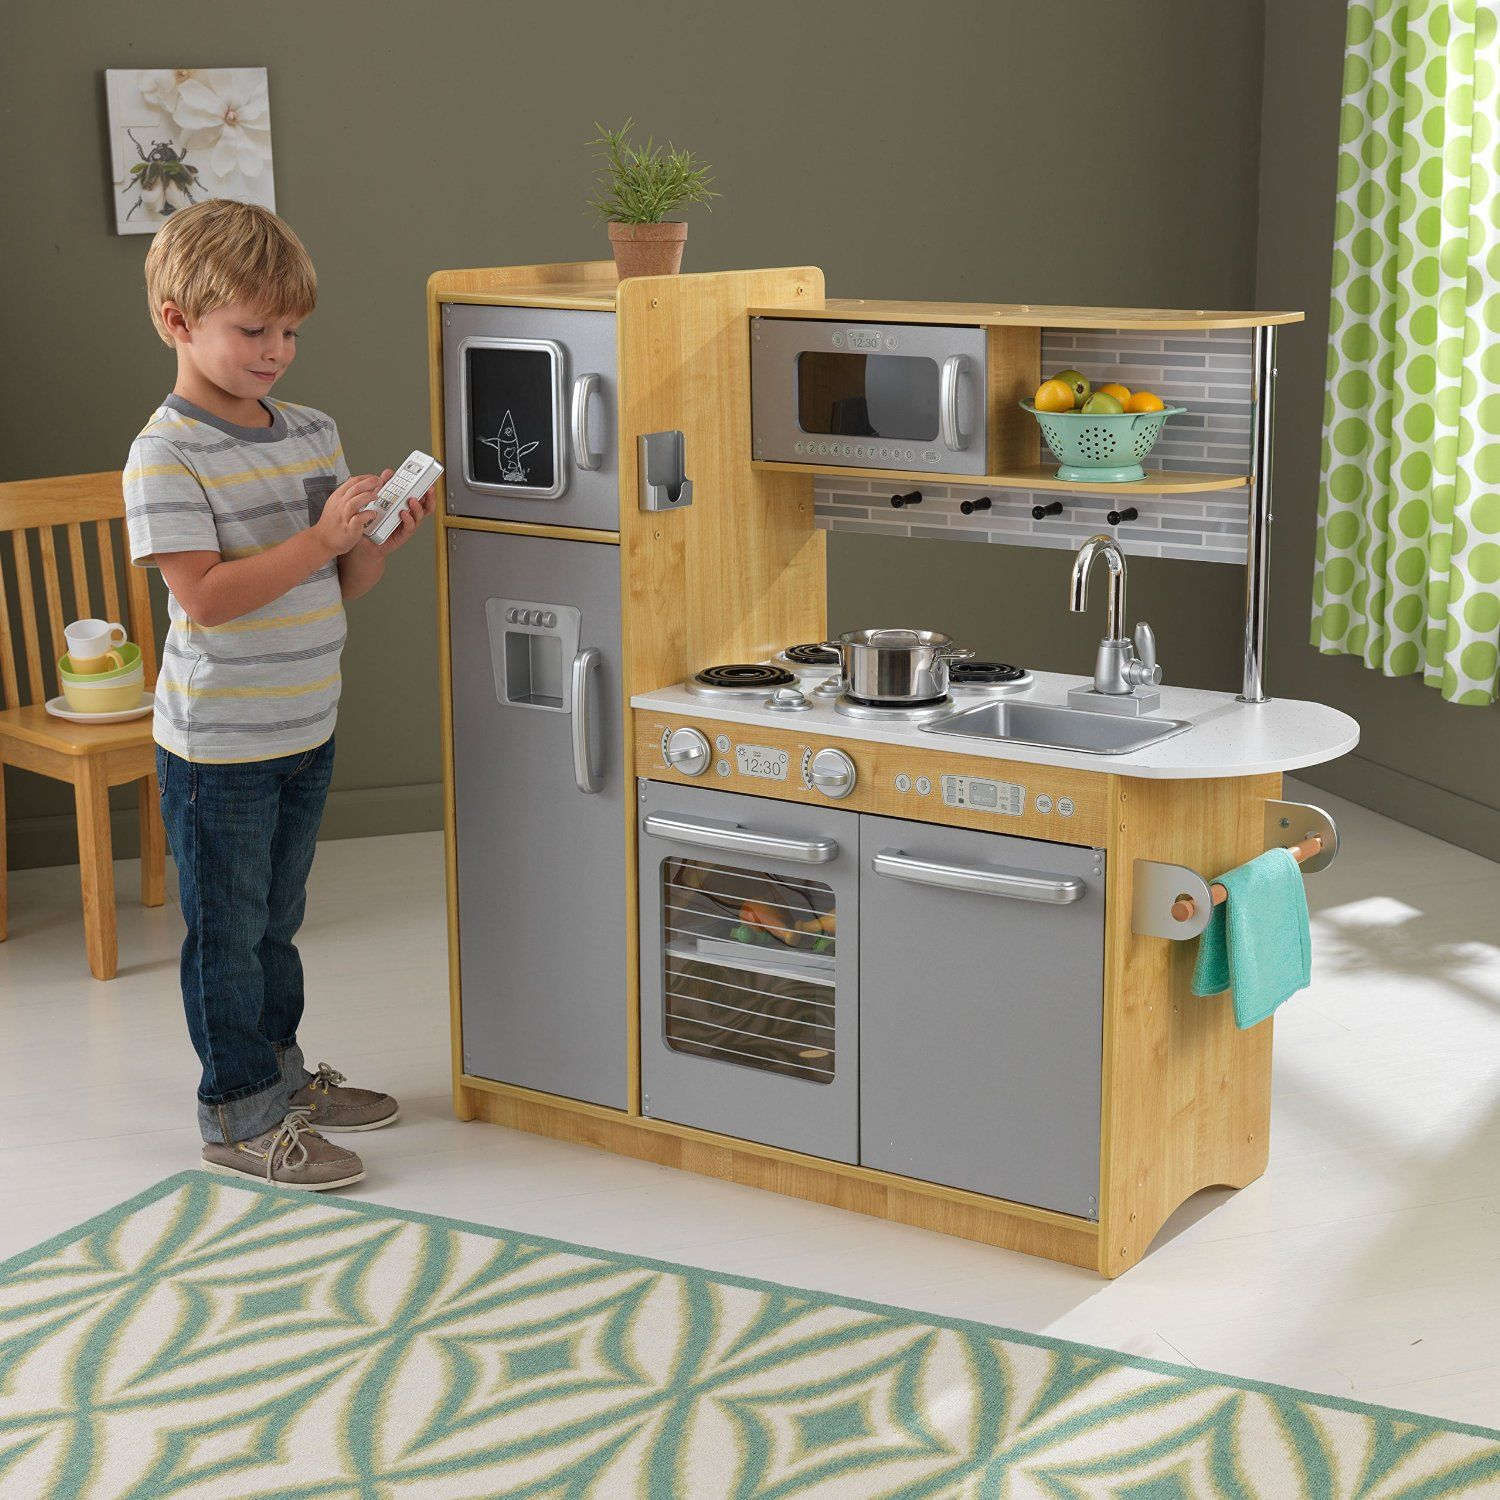 Best Play Kitchens for Kids Uptown kitchen, Kitchen sets